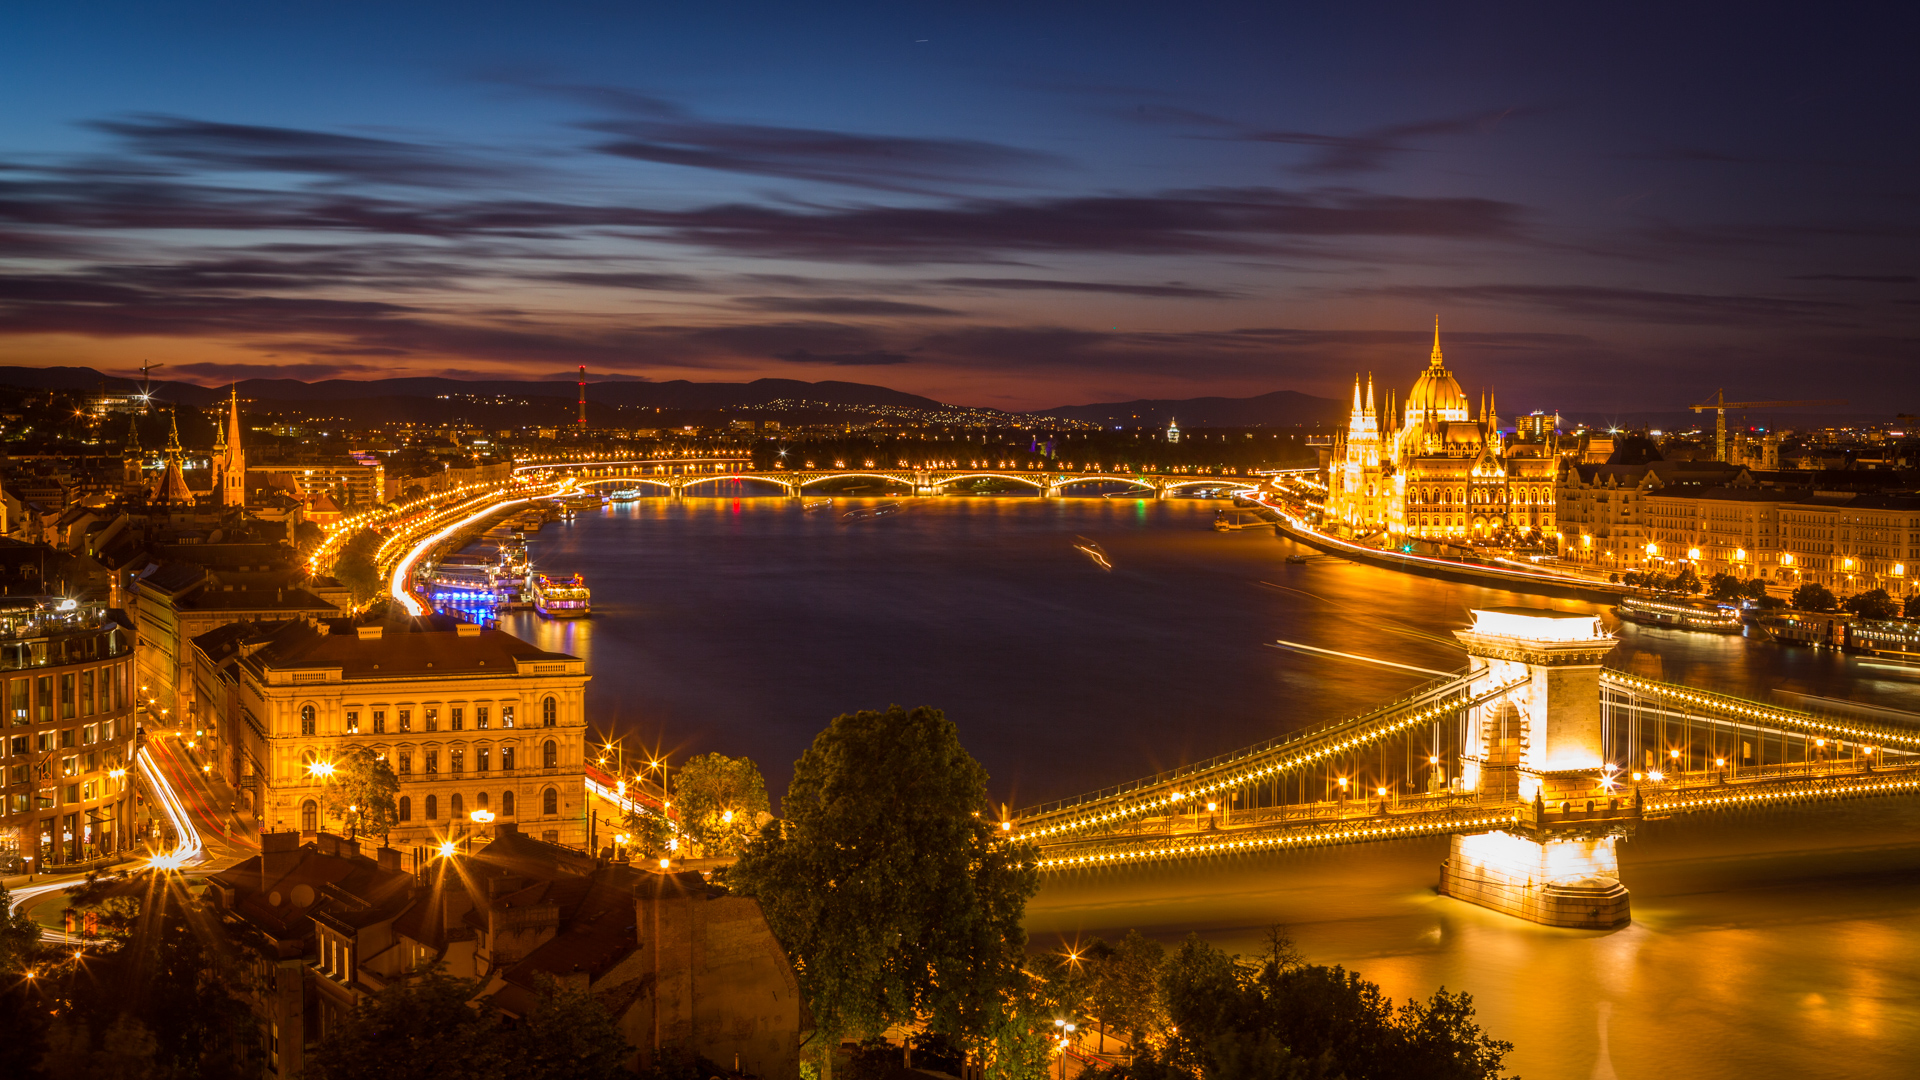 Hungarian Parliament Building after sunset. ISO100, 29mm, f/16, 25sec